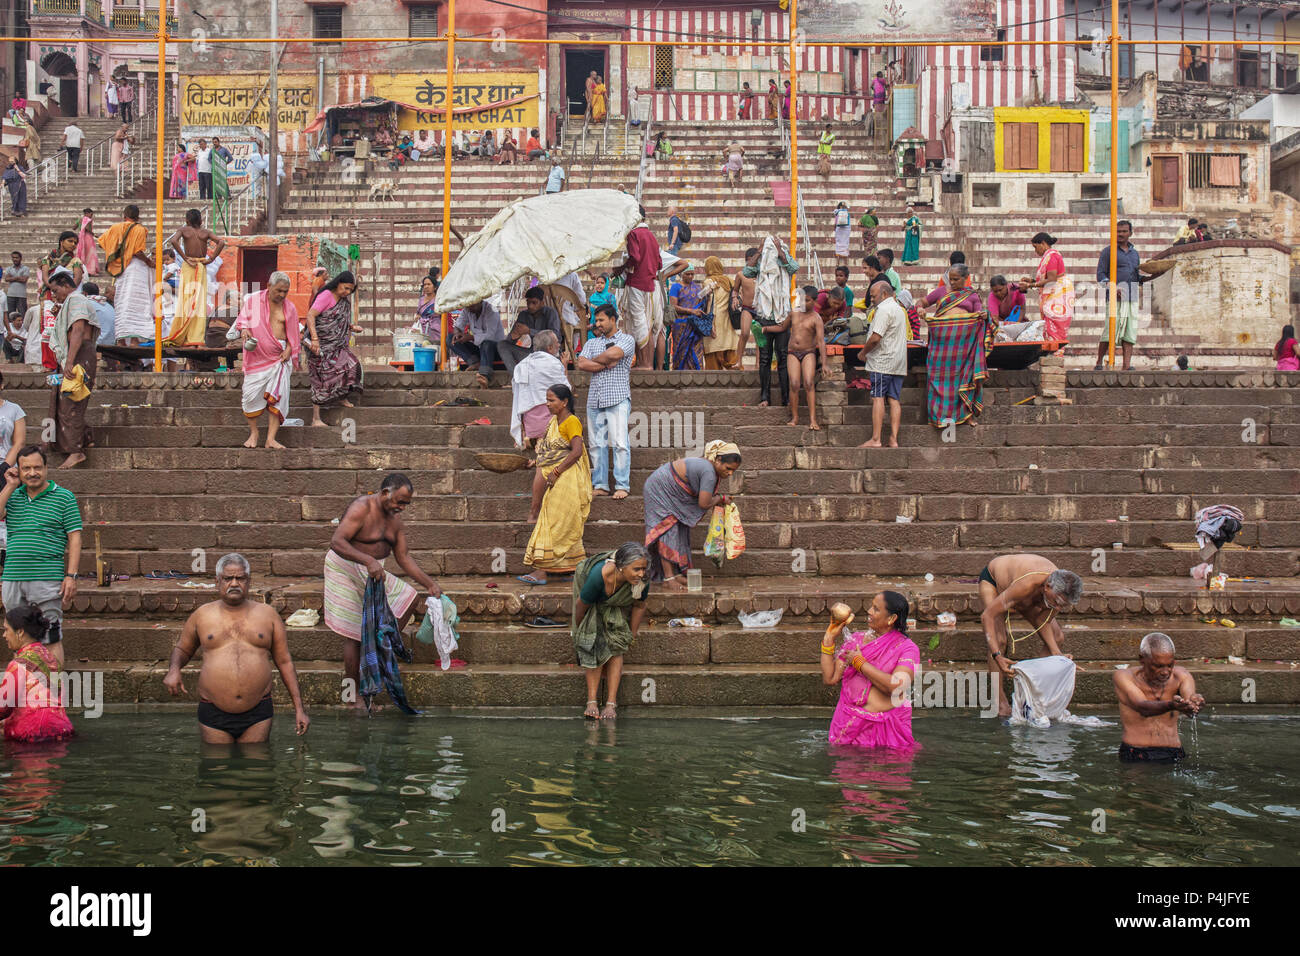 4914fa39231 men and women bathe in The Ganges River during Hindu puja, Varanasi, India.  Puja is sacred ritual for Indians and means Hindu praying